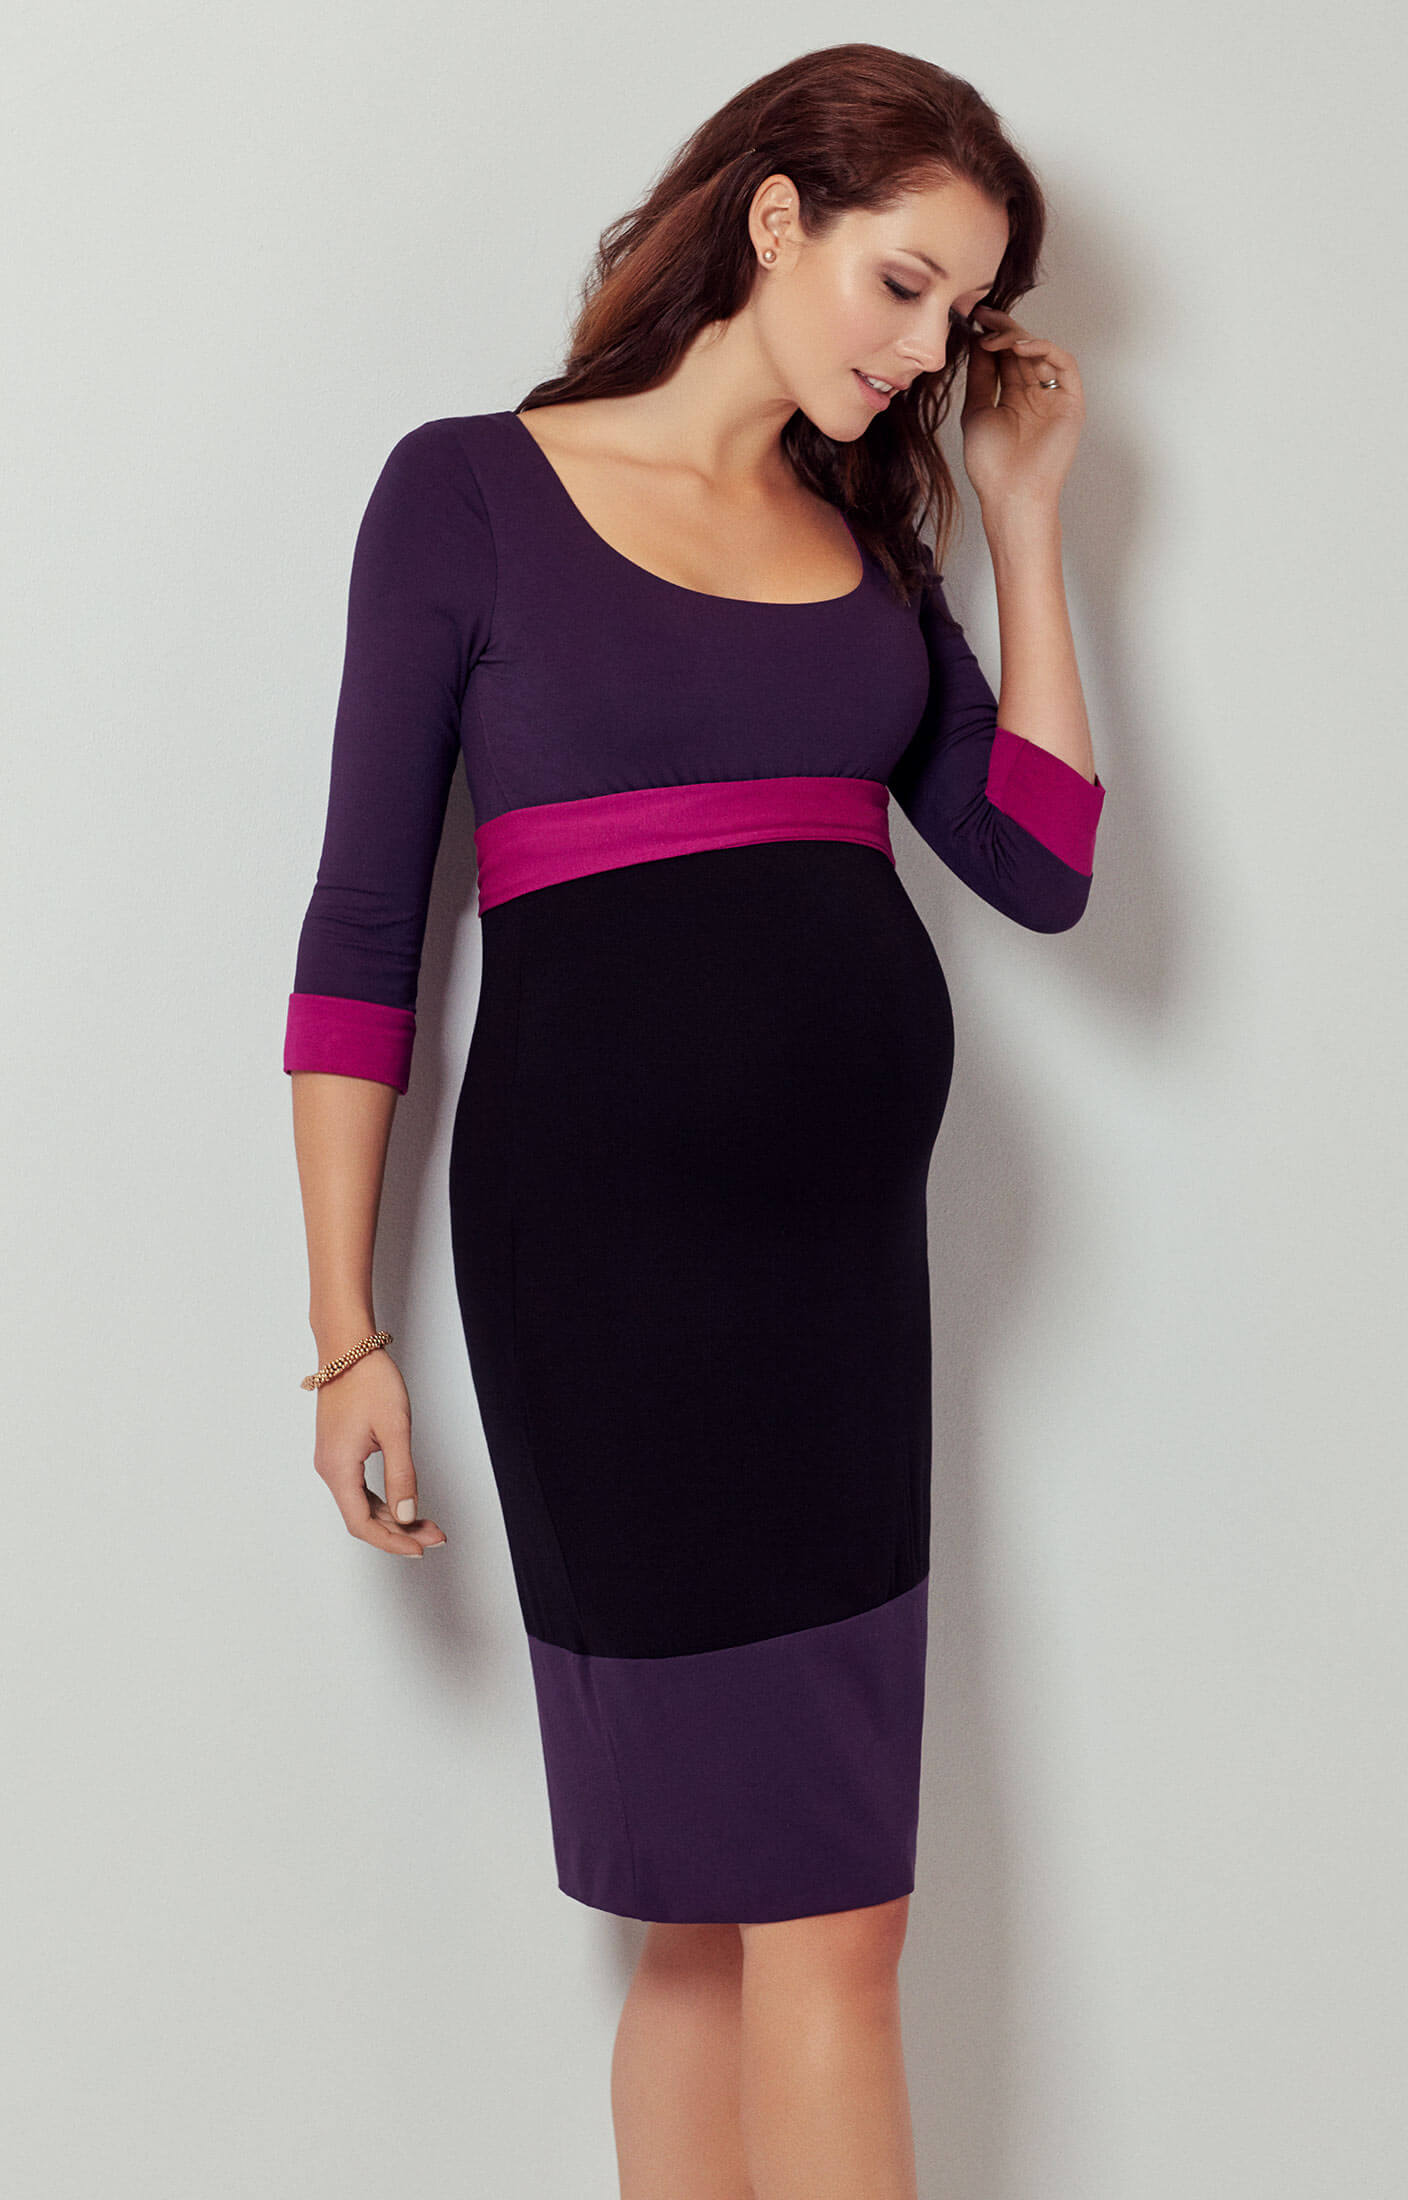 7b903ad257dd6 Colour Block Maternity Dress (Purple) - Maternity Wedding Dresses, Evening  Wear and Party Clothes by Tiffany Rose UK